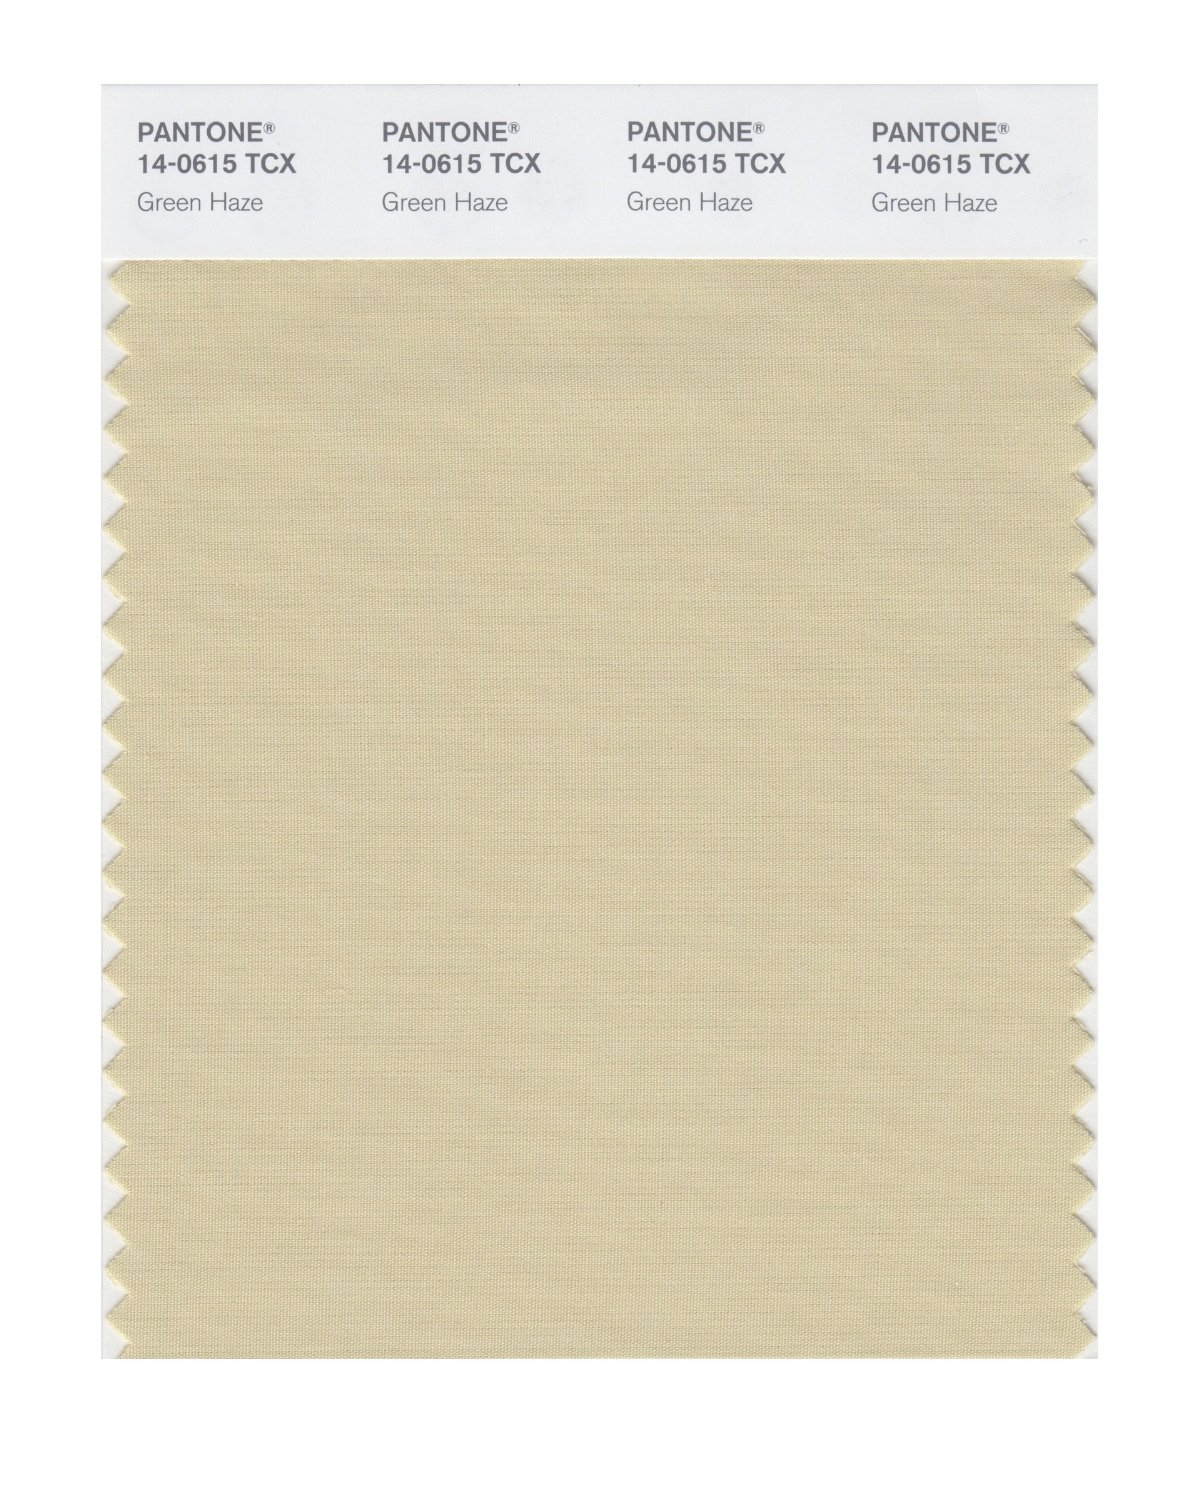 Pantone Smart Swatch 14-0615 Green Haze